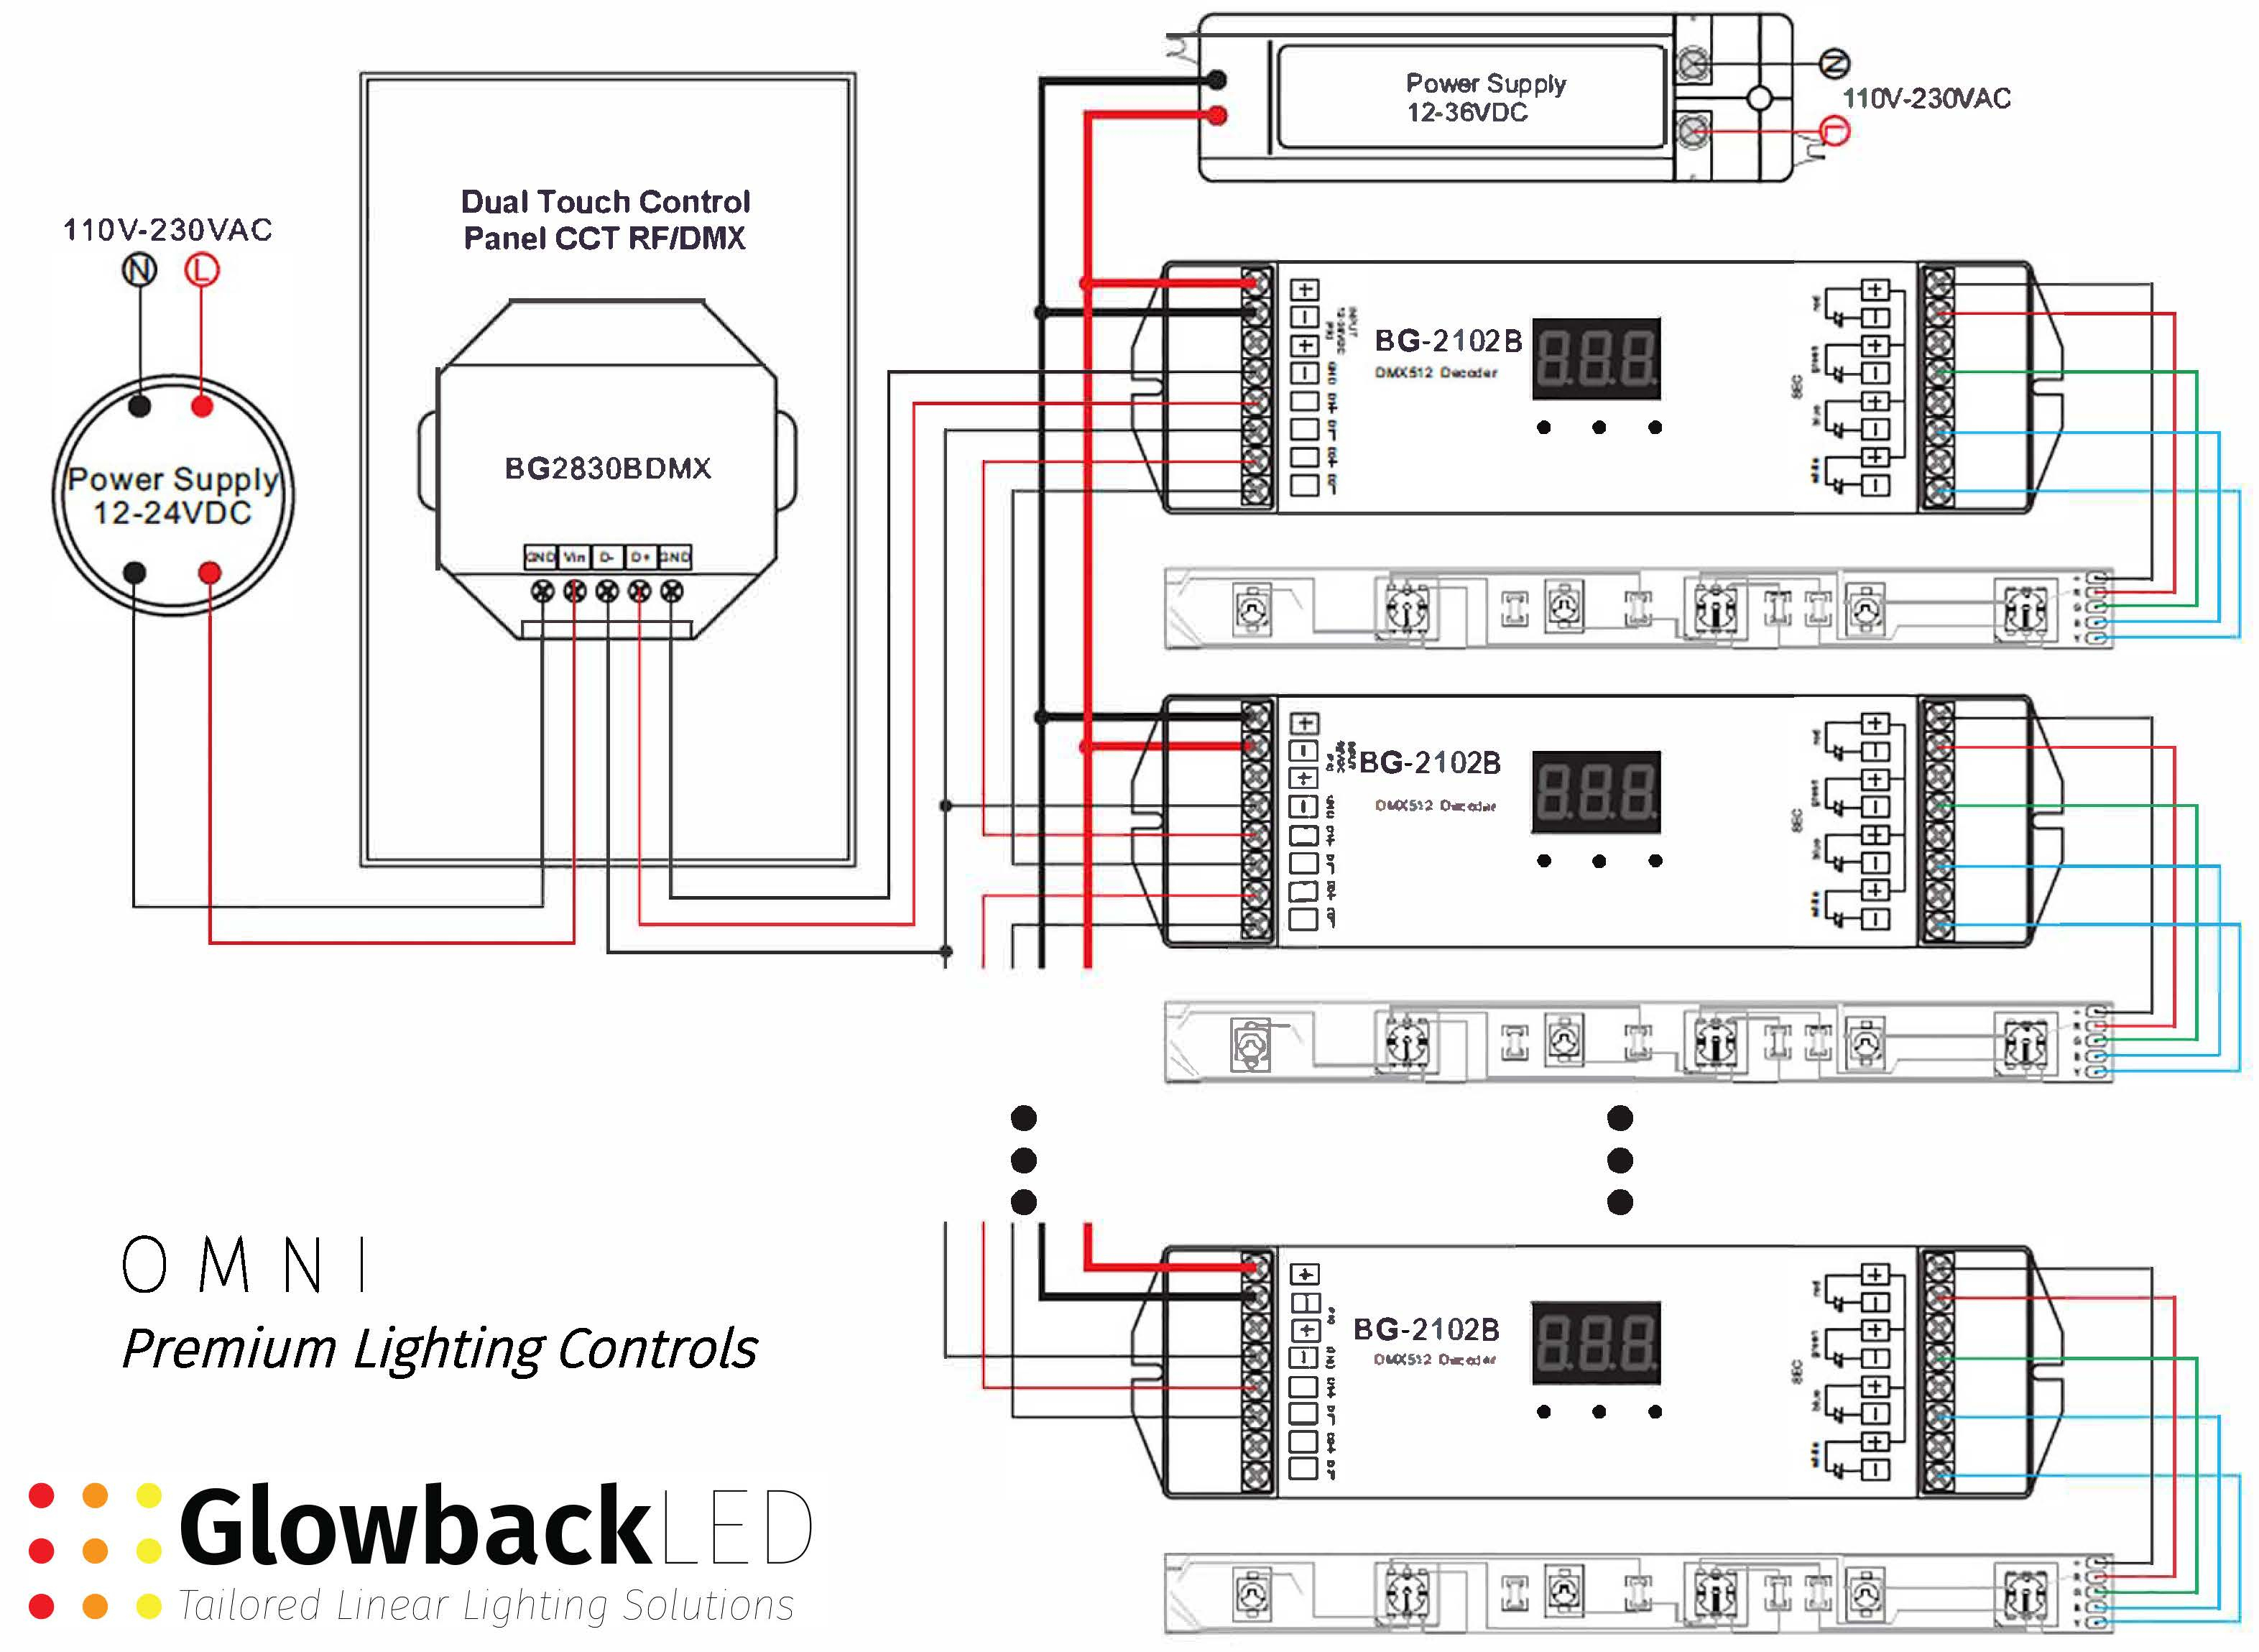 Wiring Diagram For Dmx Controllers | Led Lighting Diagram - Led Lighting Wiring Diagram